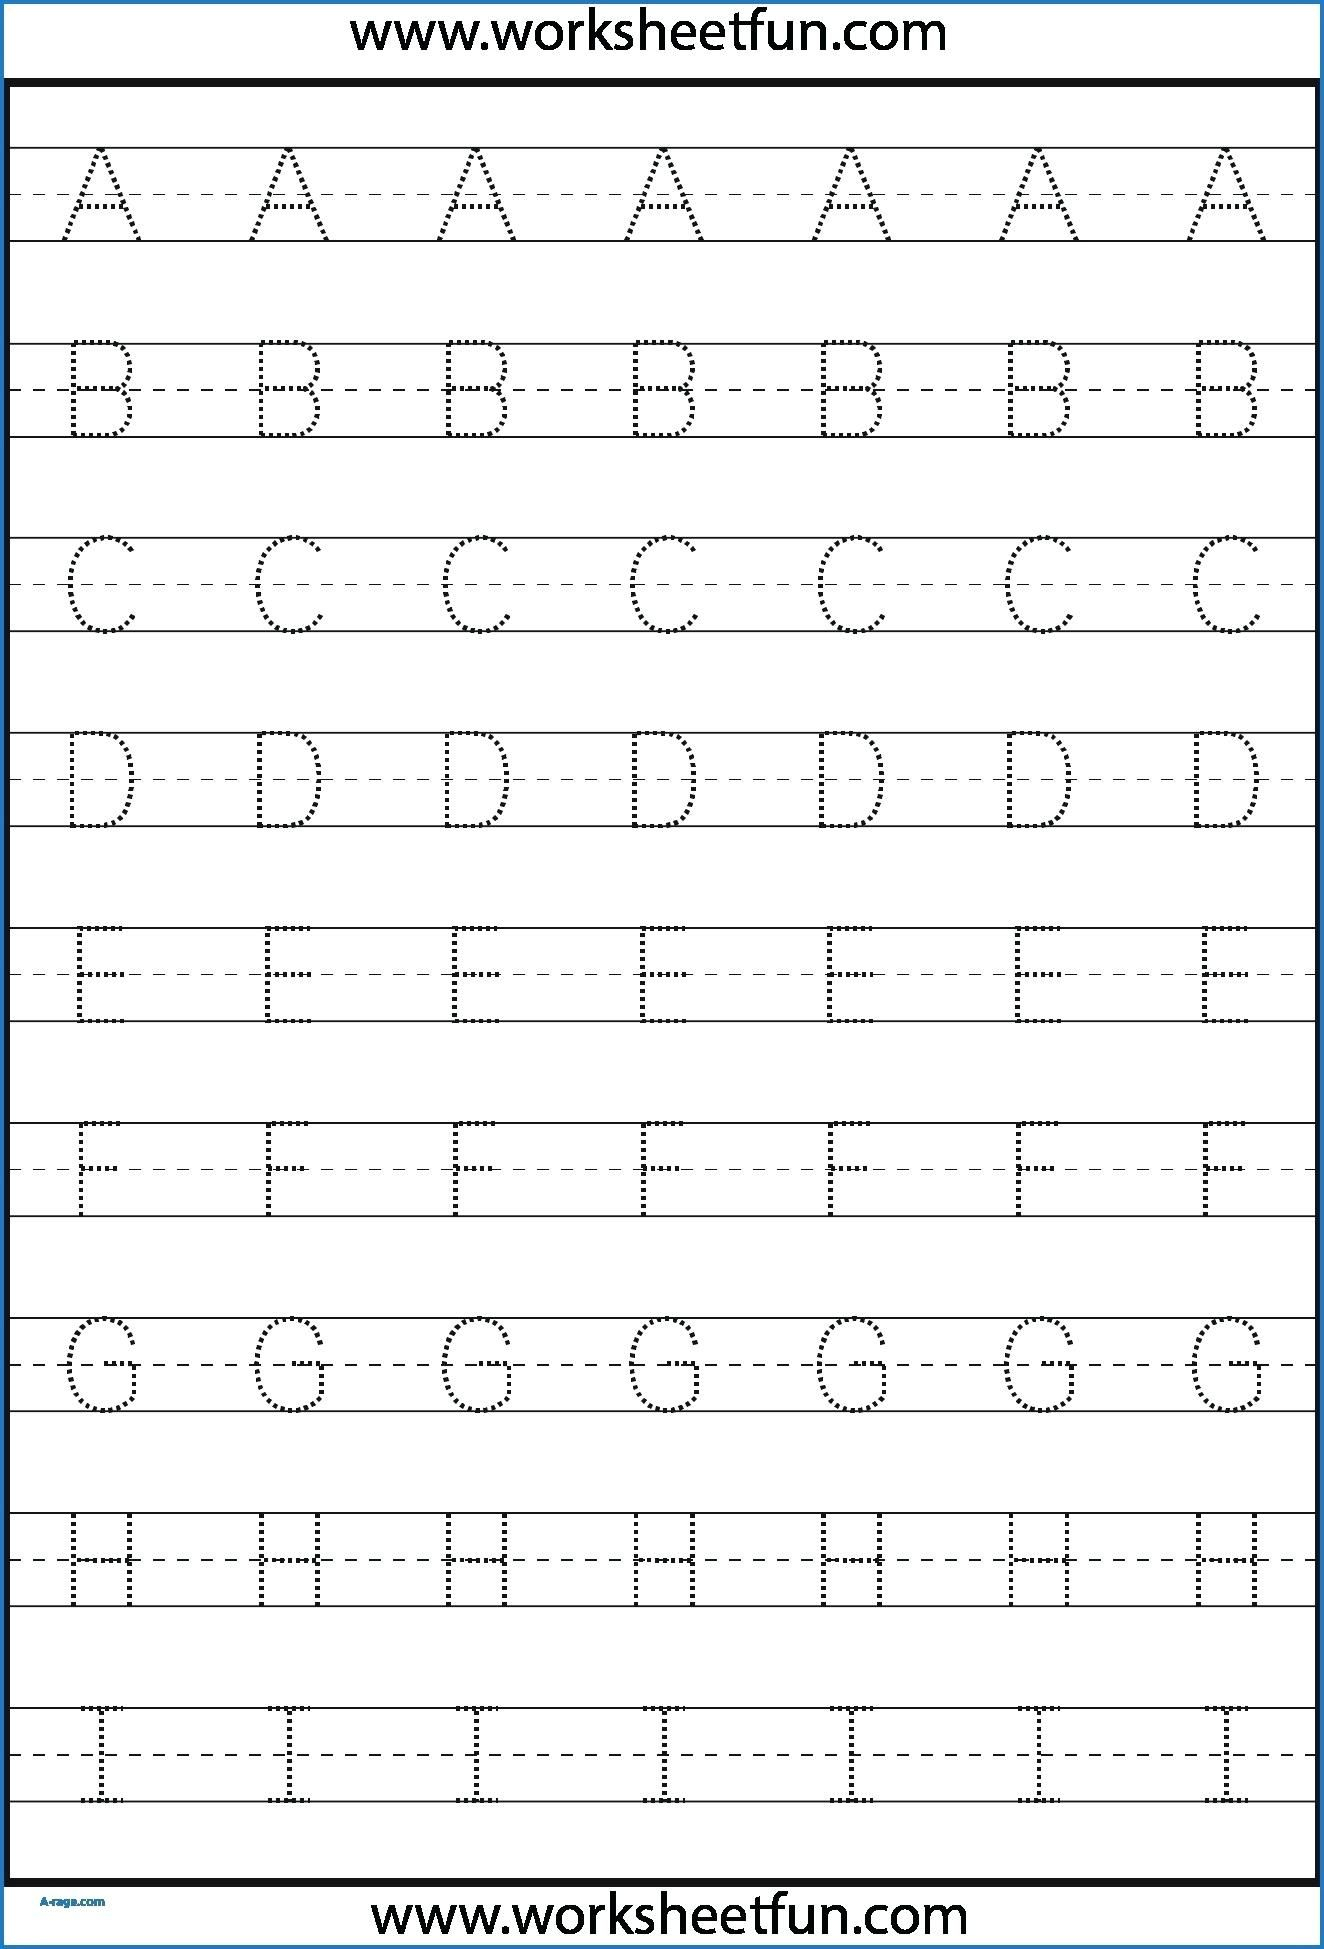 Kindergarten Letter Tracing Worksheets Pdf - Wallpaper Image throughout Letter D Worksheets For Preschool Pdf